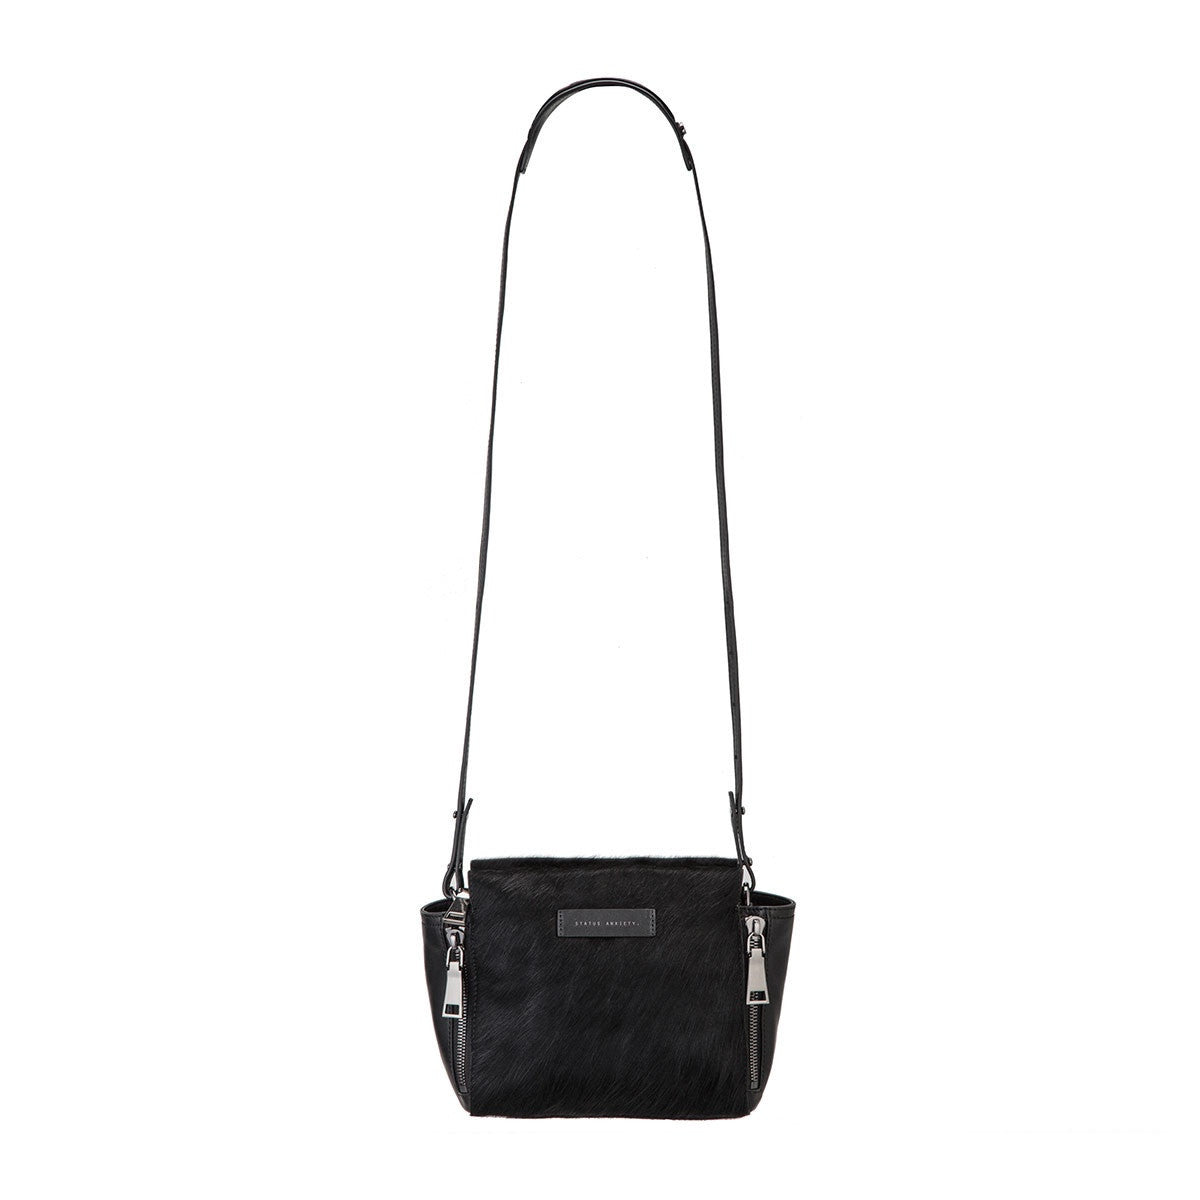 The Ascendants Bag - Black/Black Fur